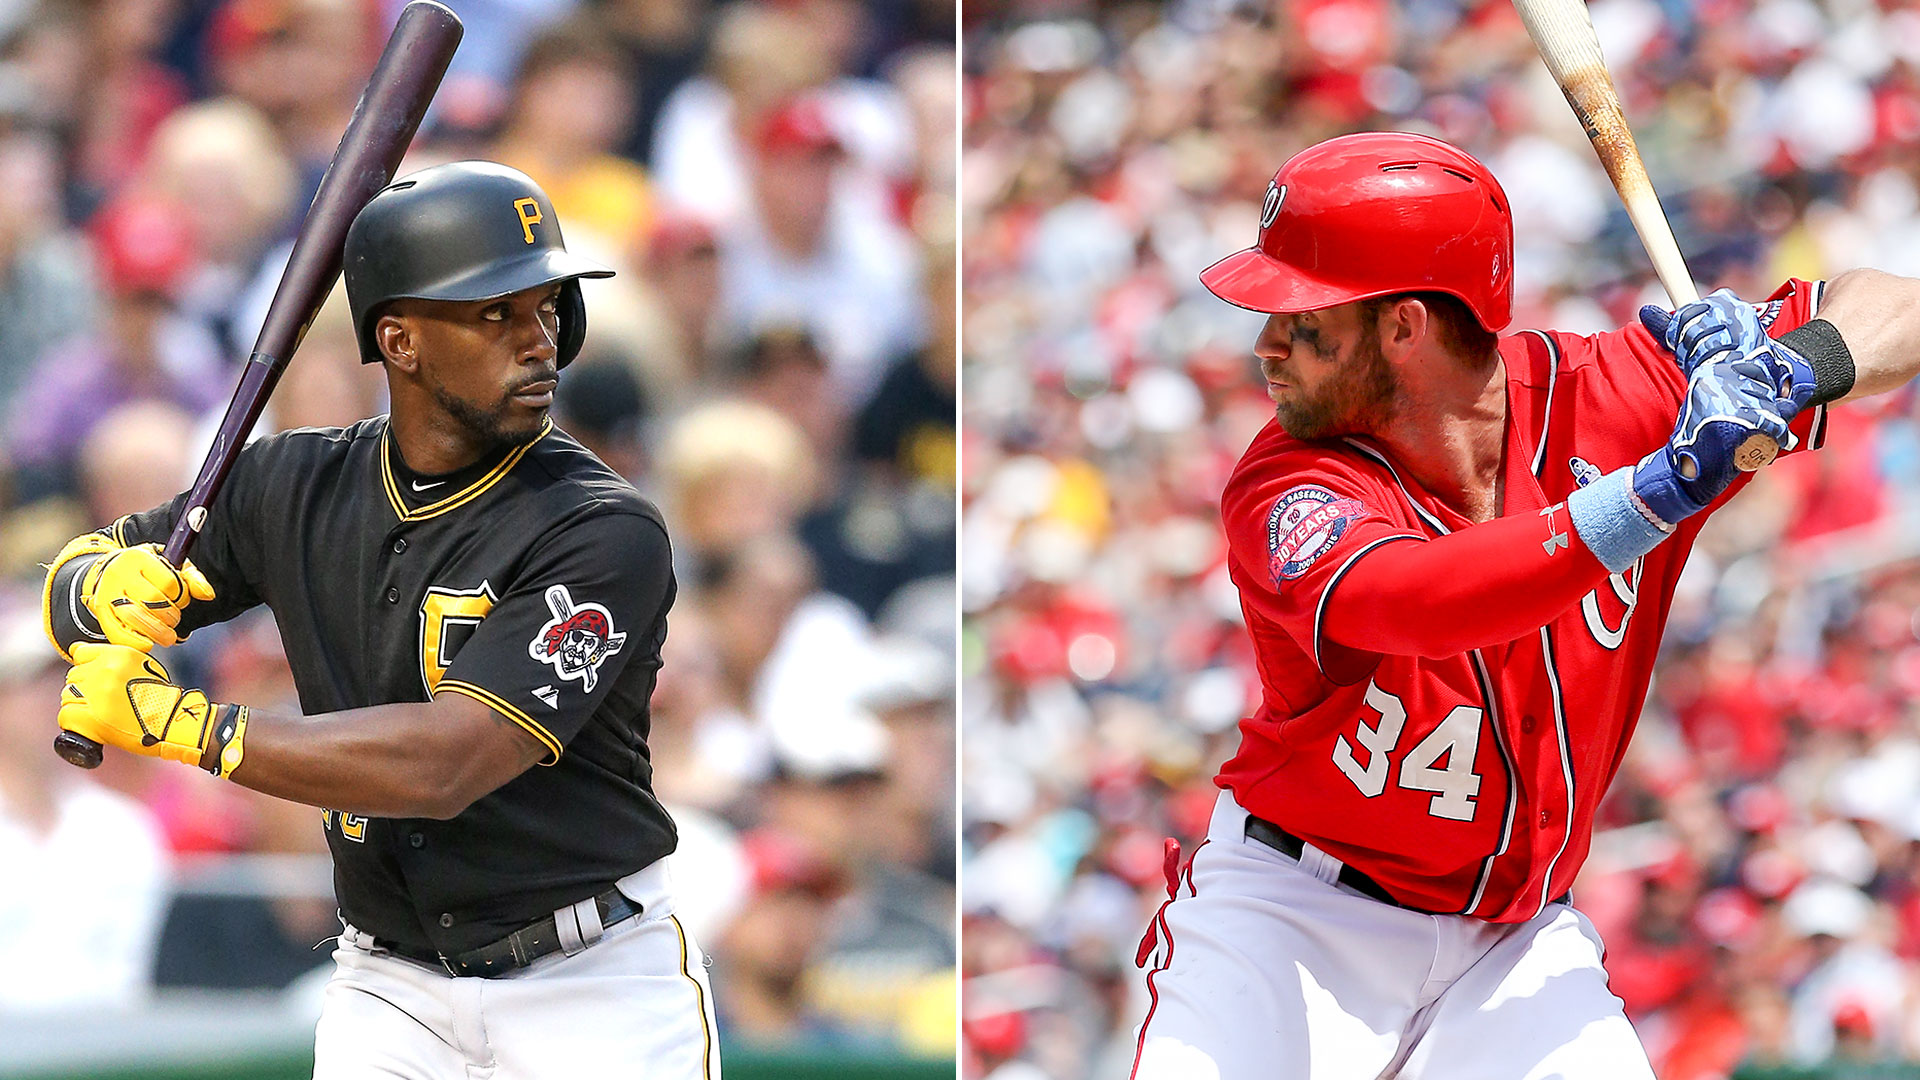 MLB odds and picks — Pirates look to jumpstart offense in series opener vs. Fister, Nationals